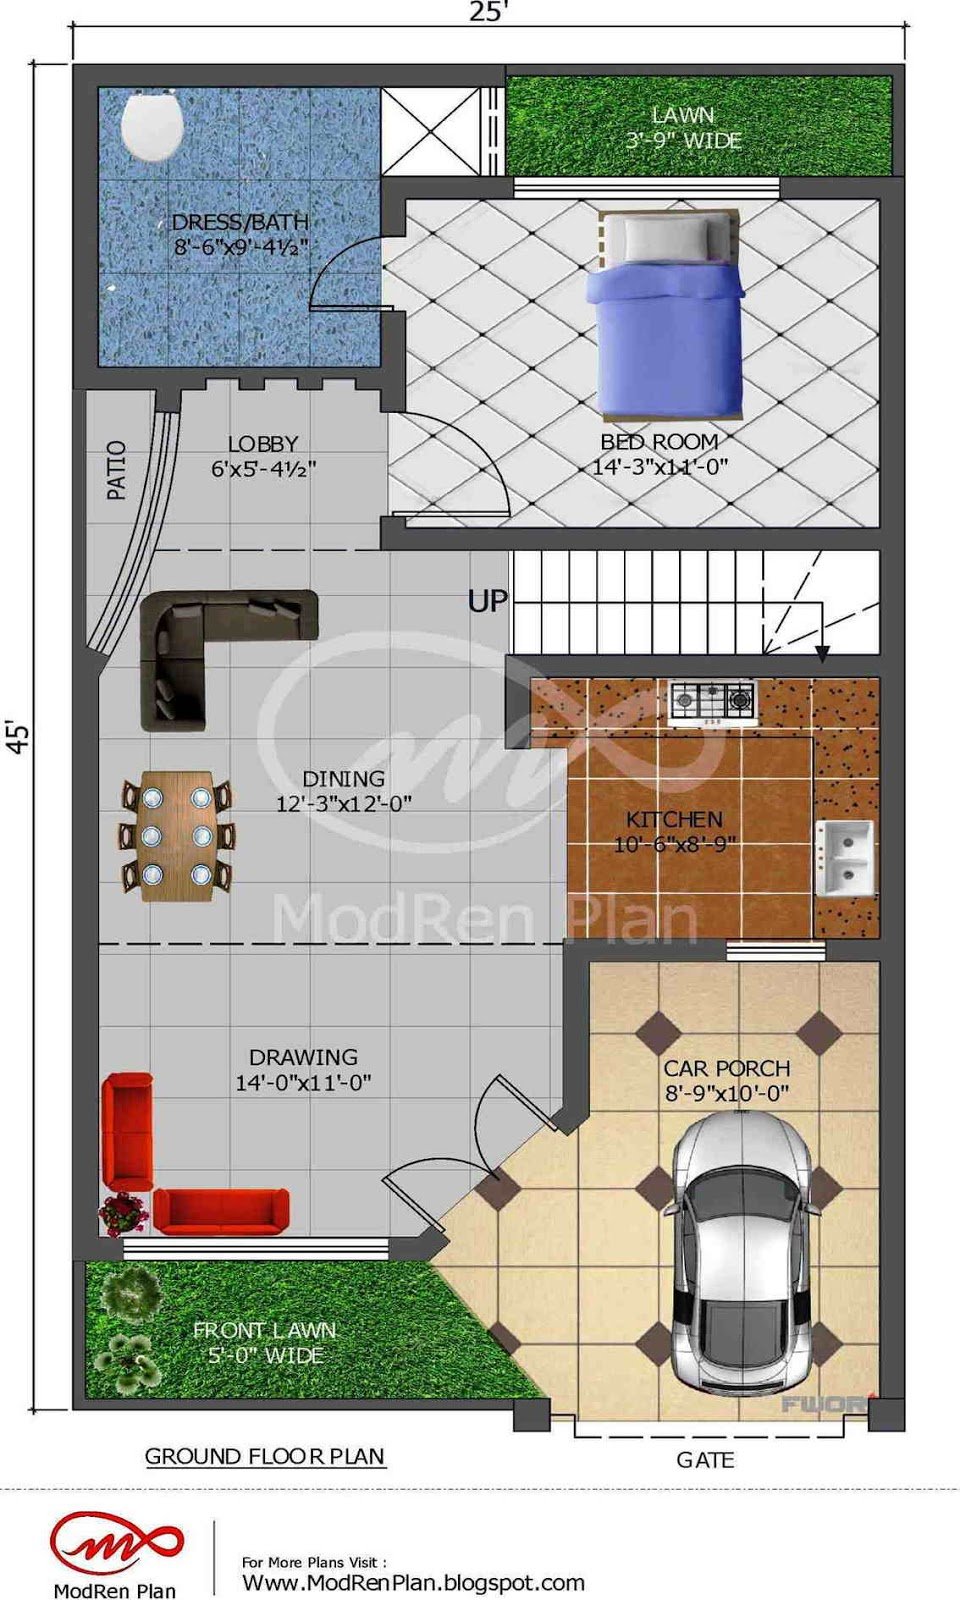 5 Marla House Plan 1200 Sq Ft 25x45 Feetwwwmodrenplanblogspotcom - home design in pakistan 5 marla